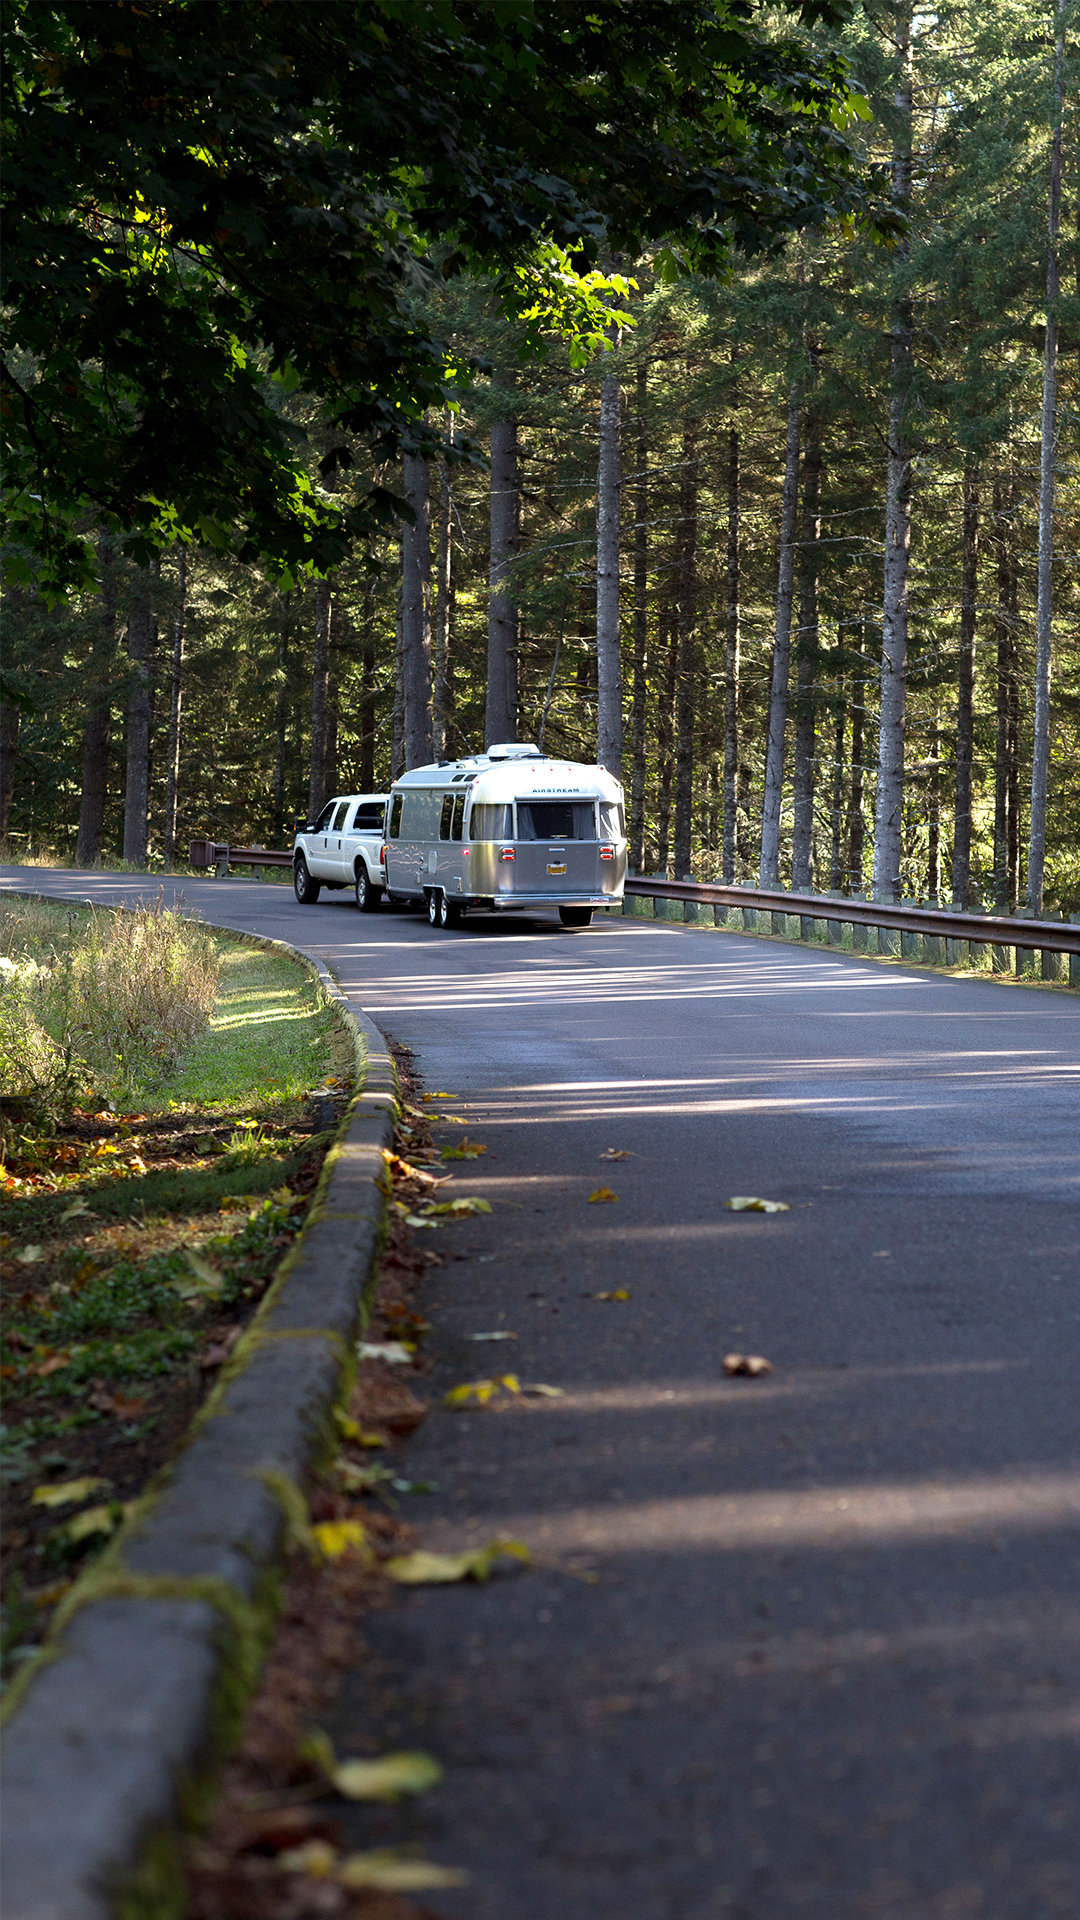 Airstream-Travel-Trailer-Dual-Axle-Towing